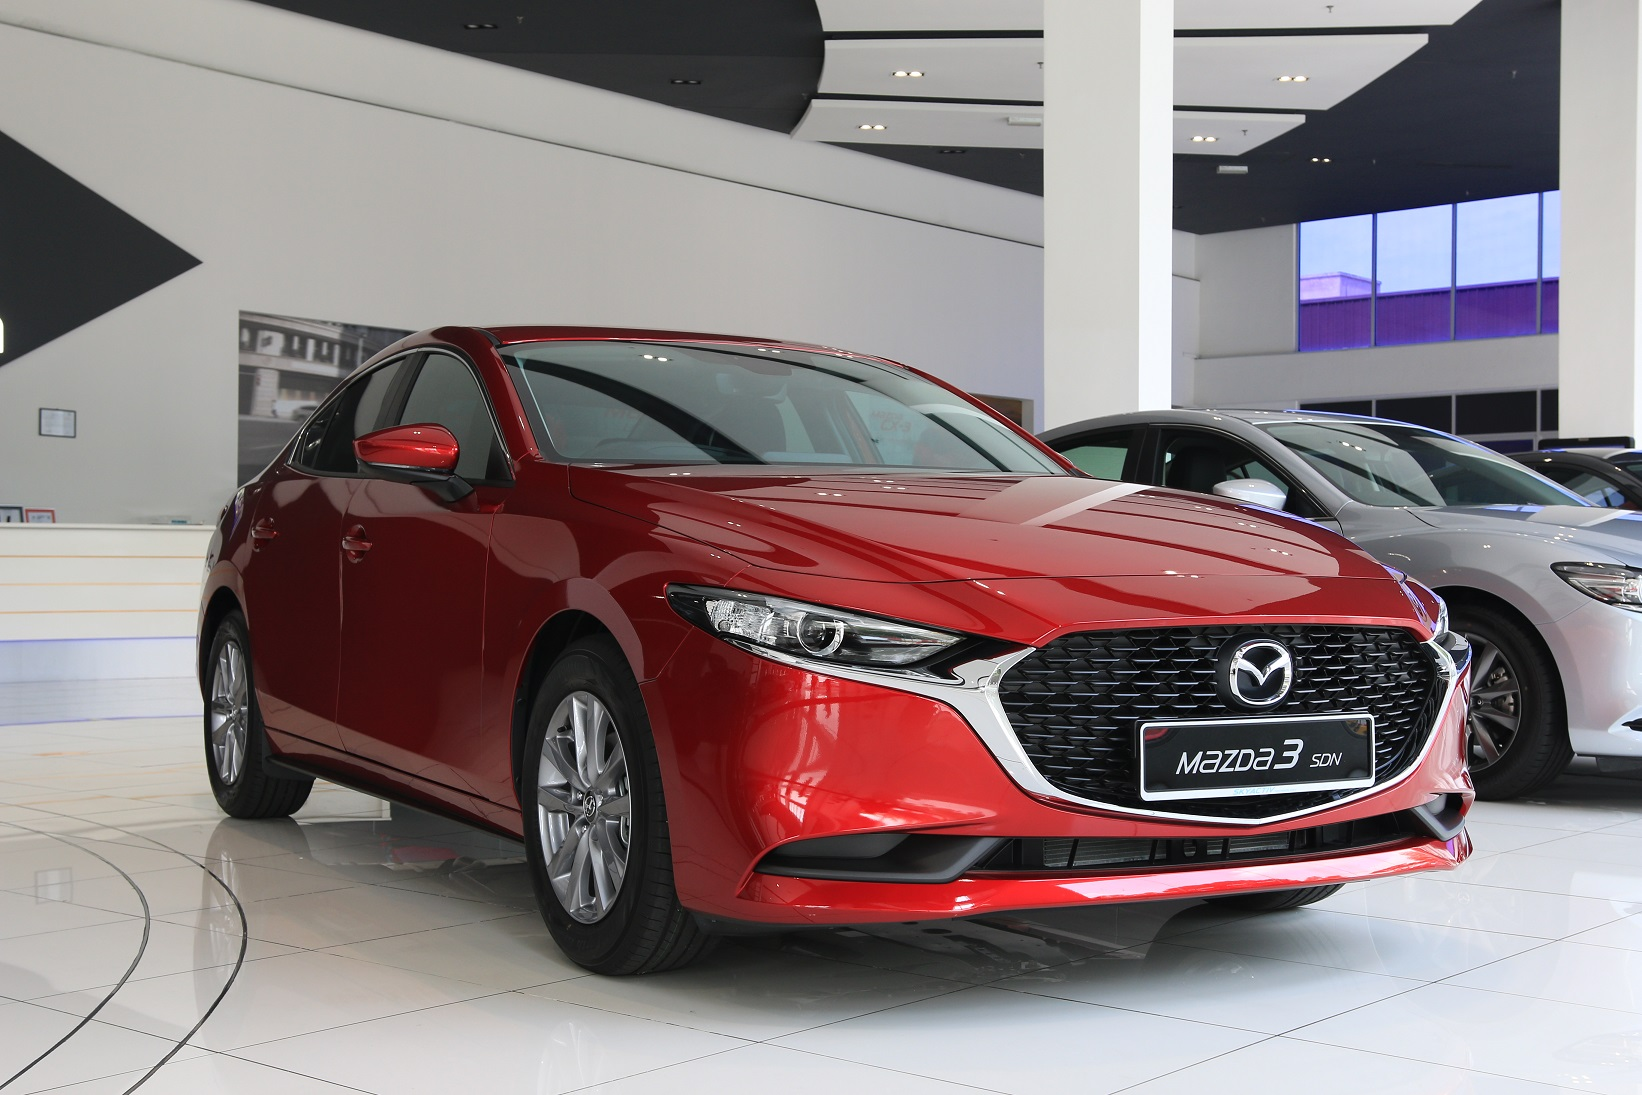 Mazda 3 Completes its Hat Trick- Third Award in a Month 7